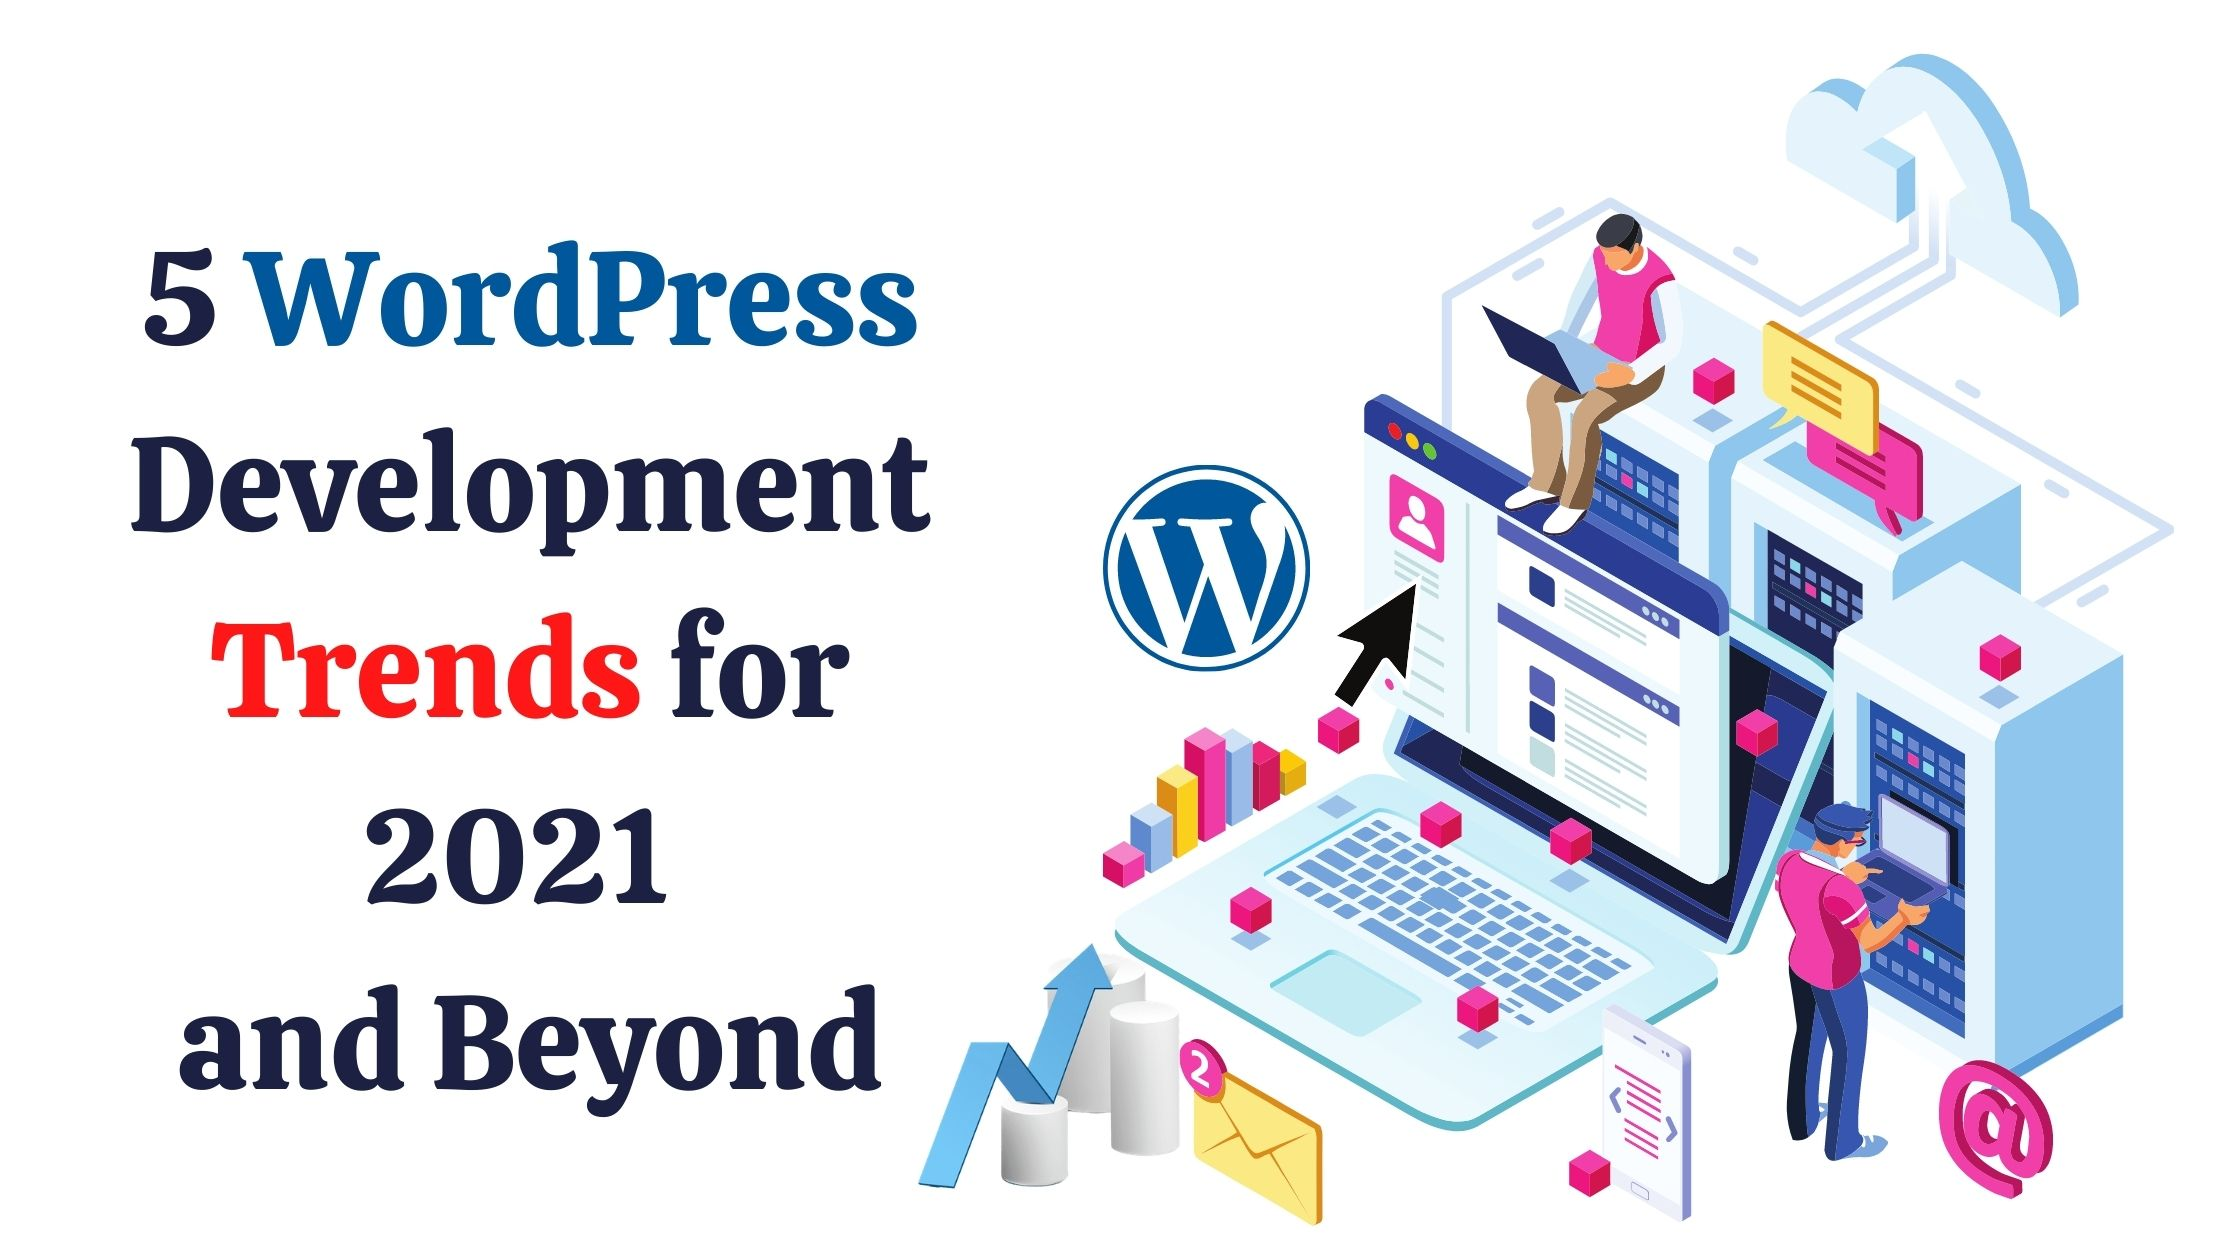 5 WordPress Development Trends for 2021 and Beyond